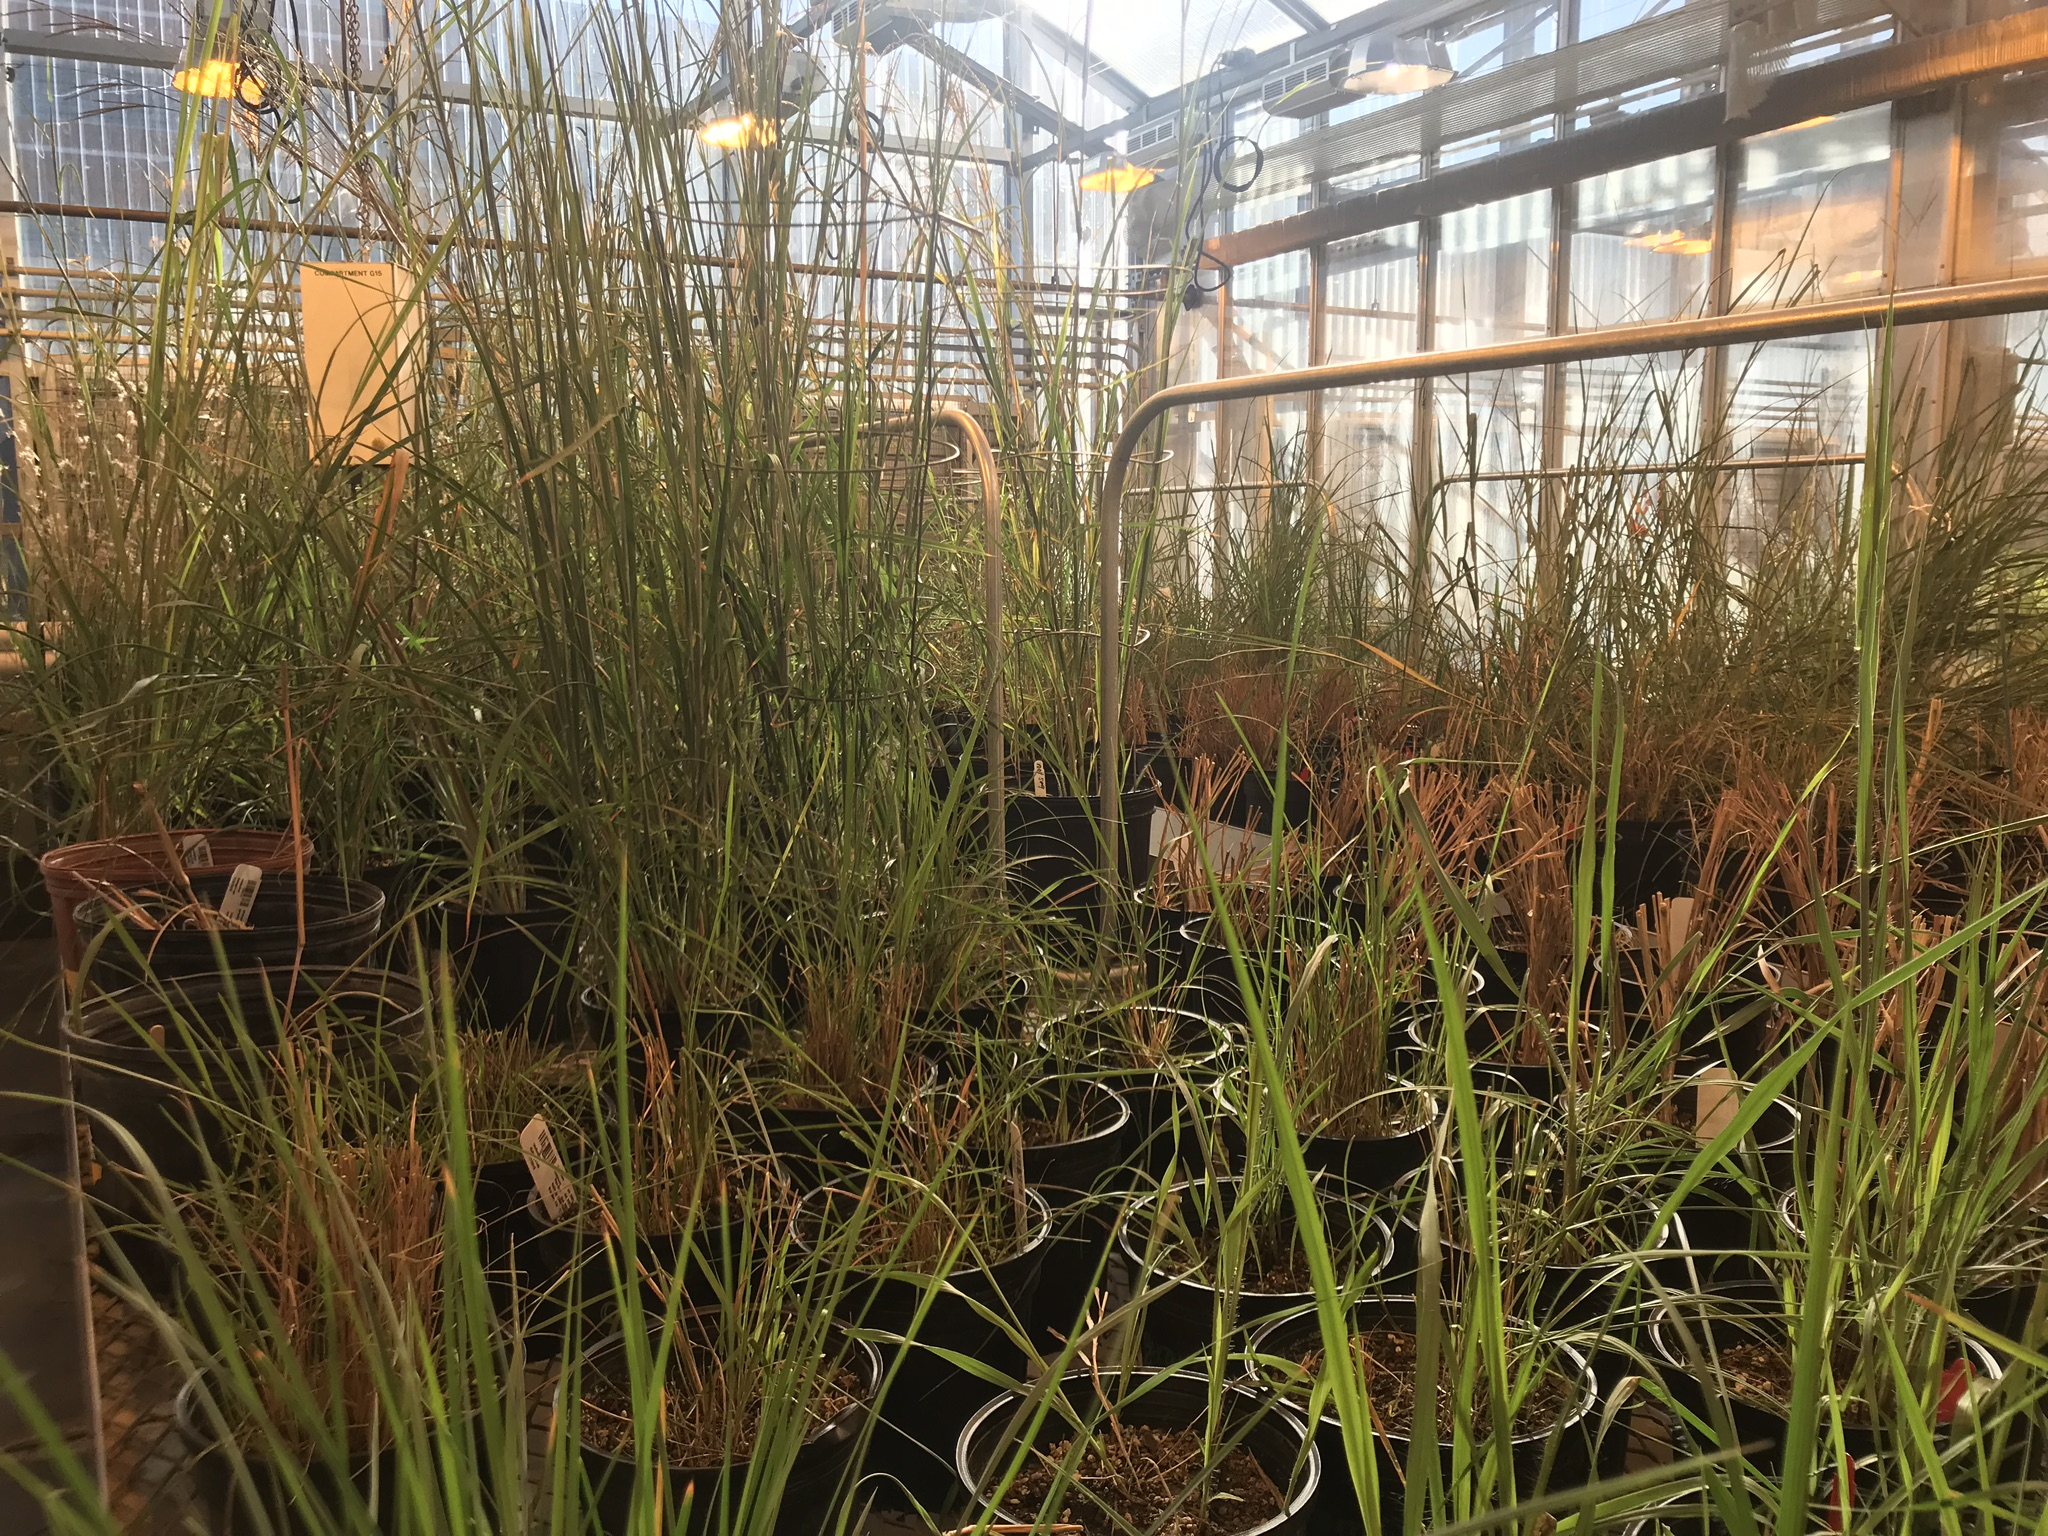 Field specimens in greenhouse